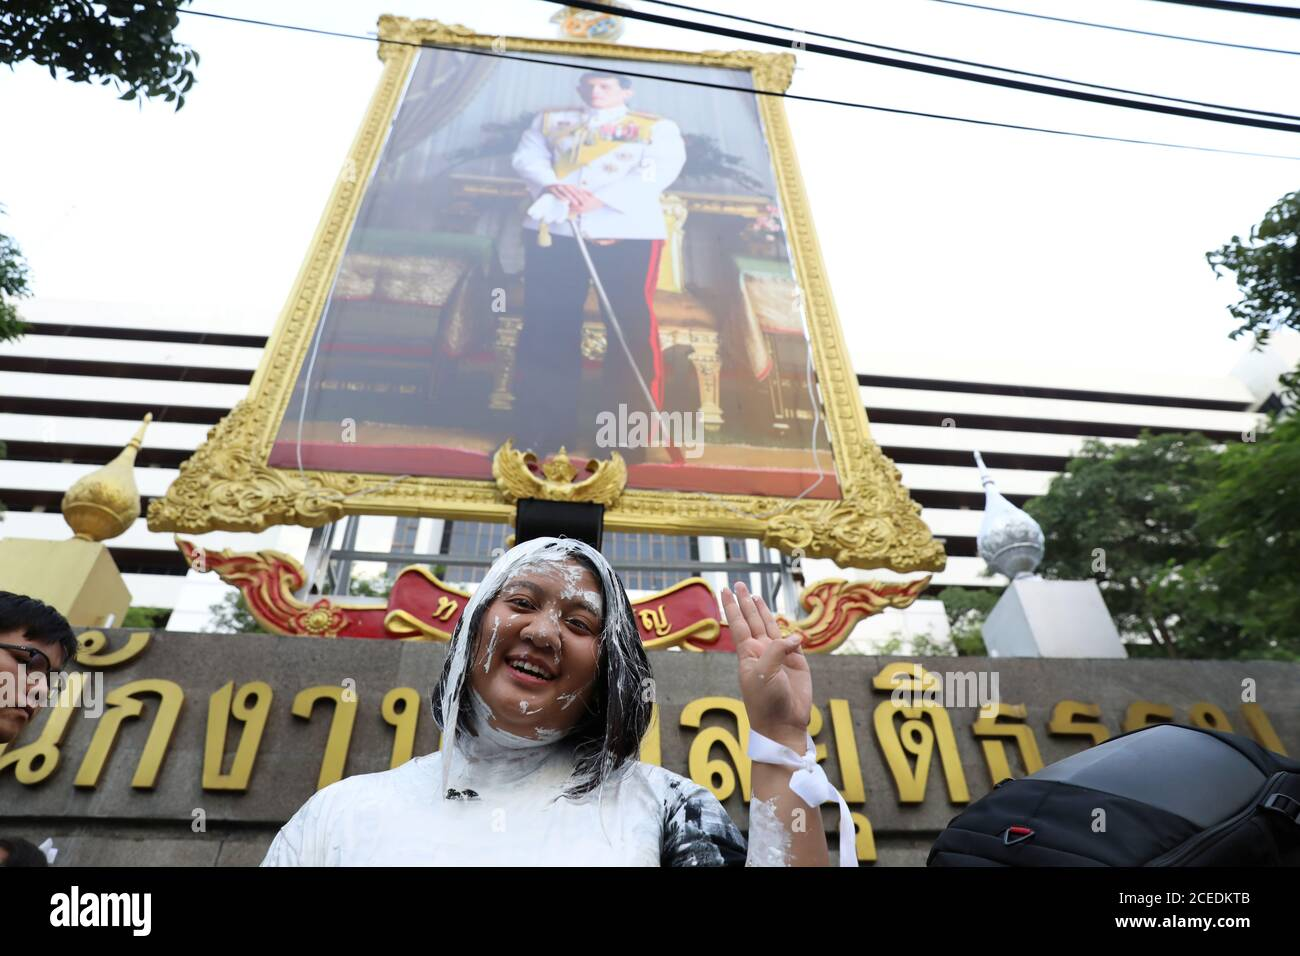 Jutatip Sirikhan 21 The President Of The Student Union Of Thailand Gestures After Throwing A Bucket